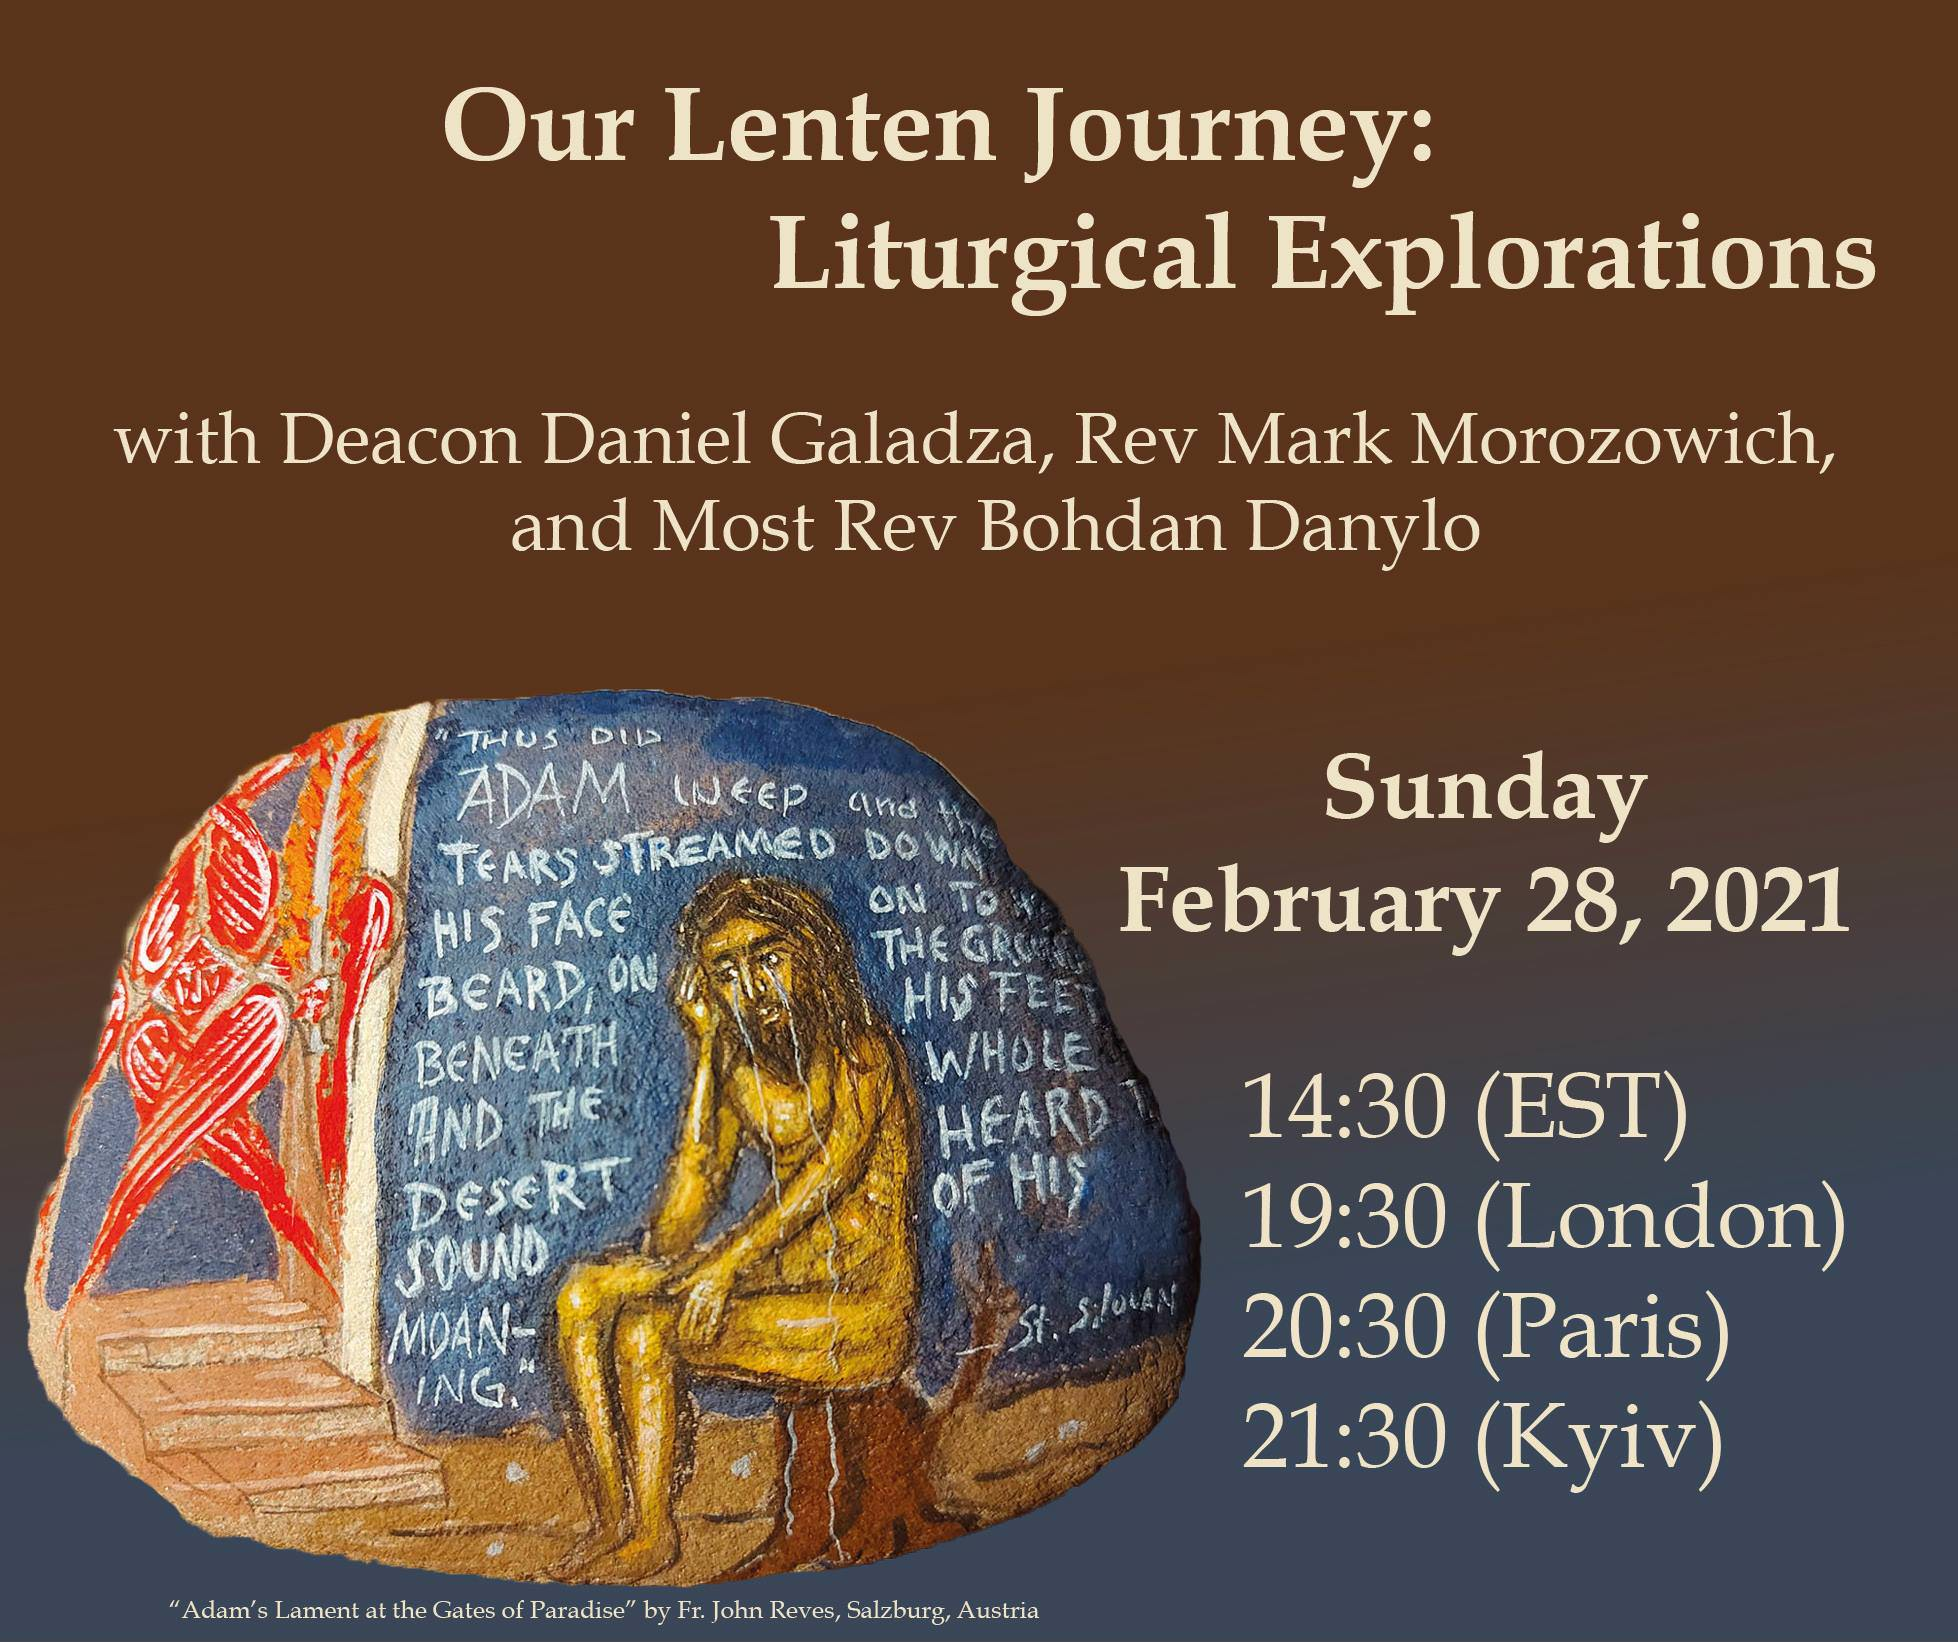 Our Lenten Journey – Liturgical Explorations